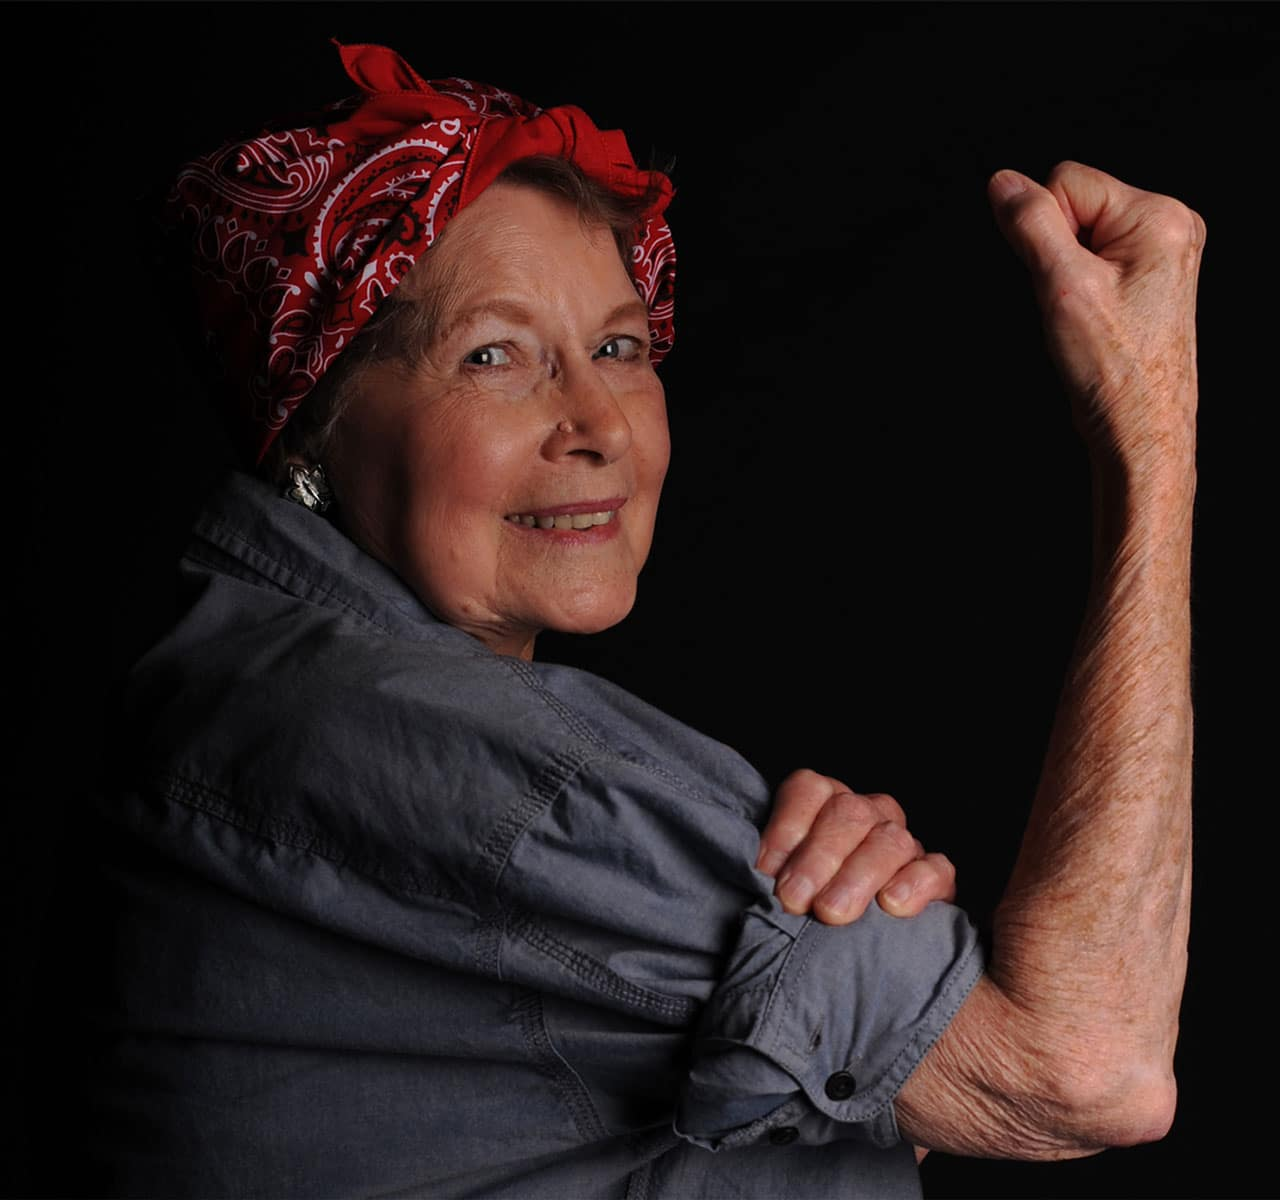 """Mary Ann Morden flexes her muscle in honor of """"Rosie the Riveter,"""" an iconic 1942 image of working women during World War II at Little Rock Air Force Base, Ark. After being a school teacher for 30 years, Mary Ann now volunteers assisting military retirees from across the state of Arkansas."""